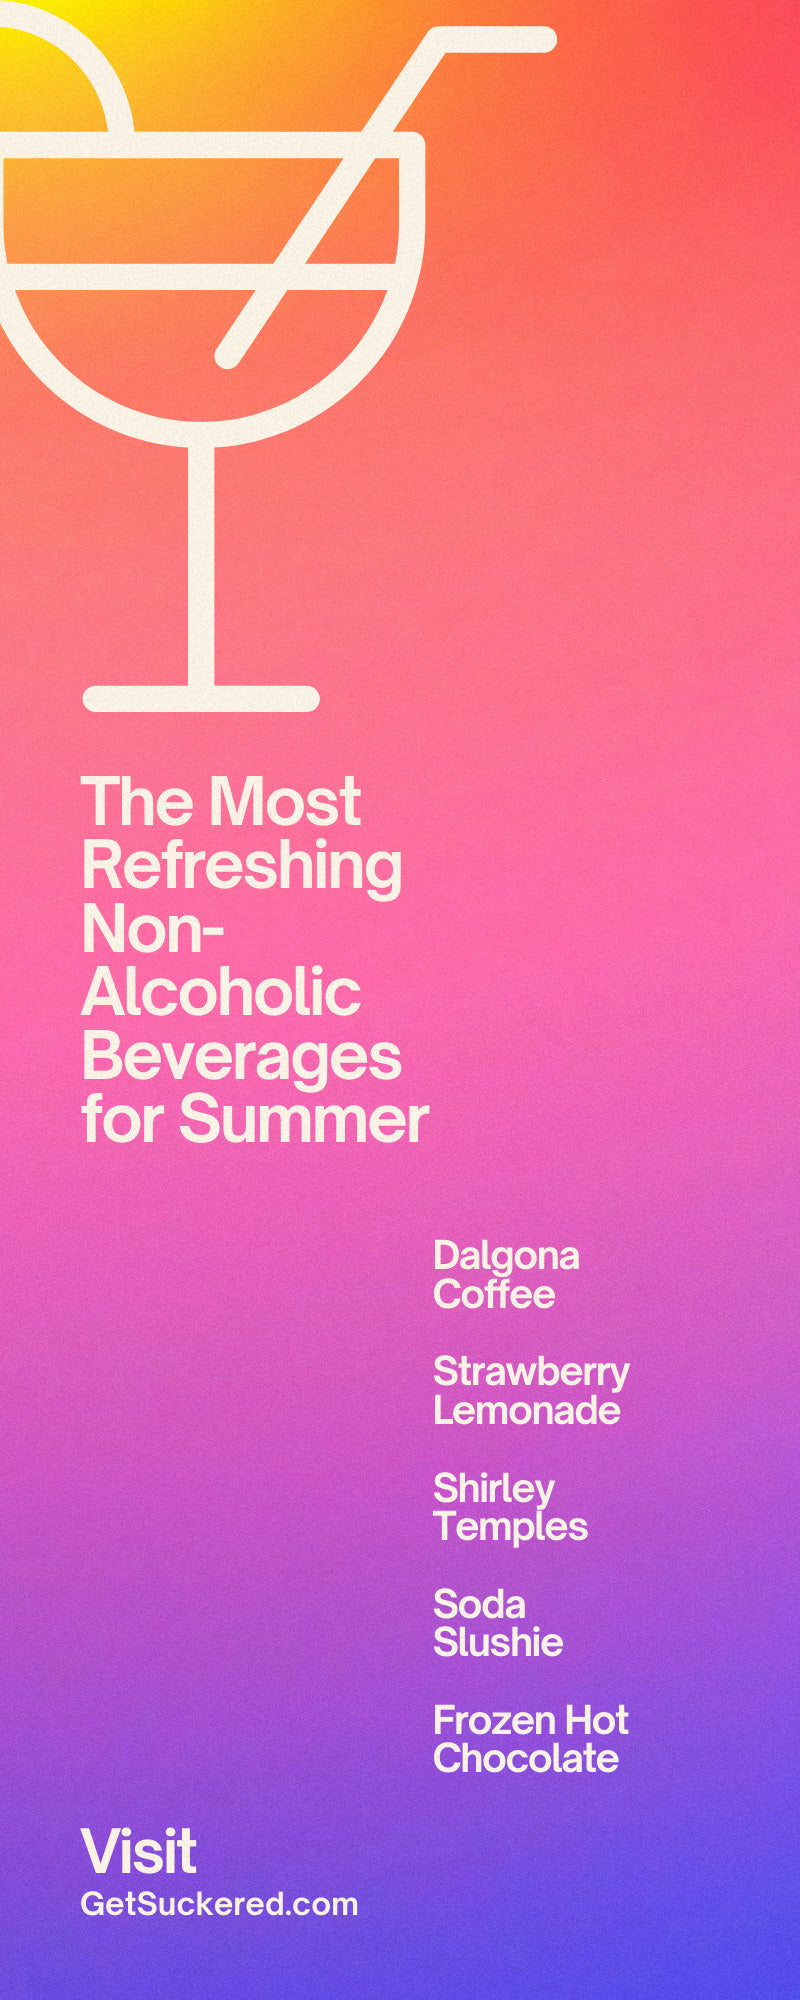 The Most Refreshing Non-Alcoholic Beverages for Summer